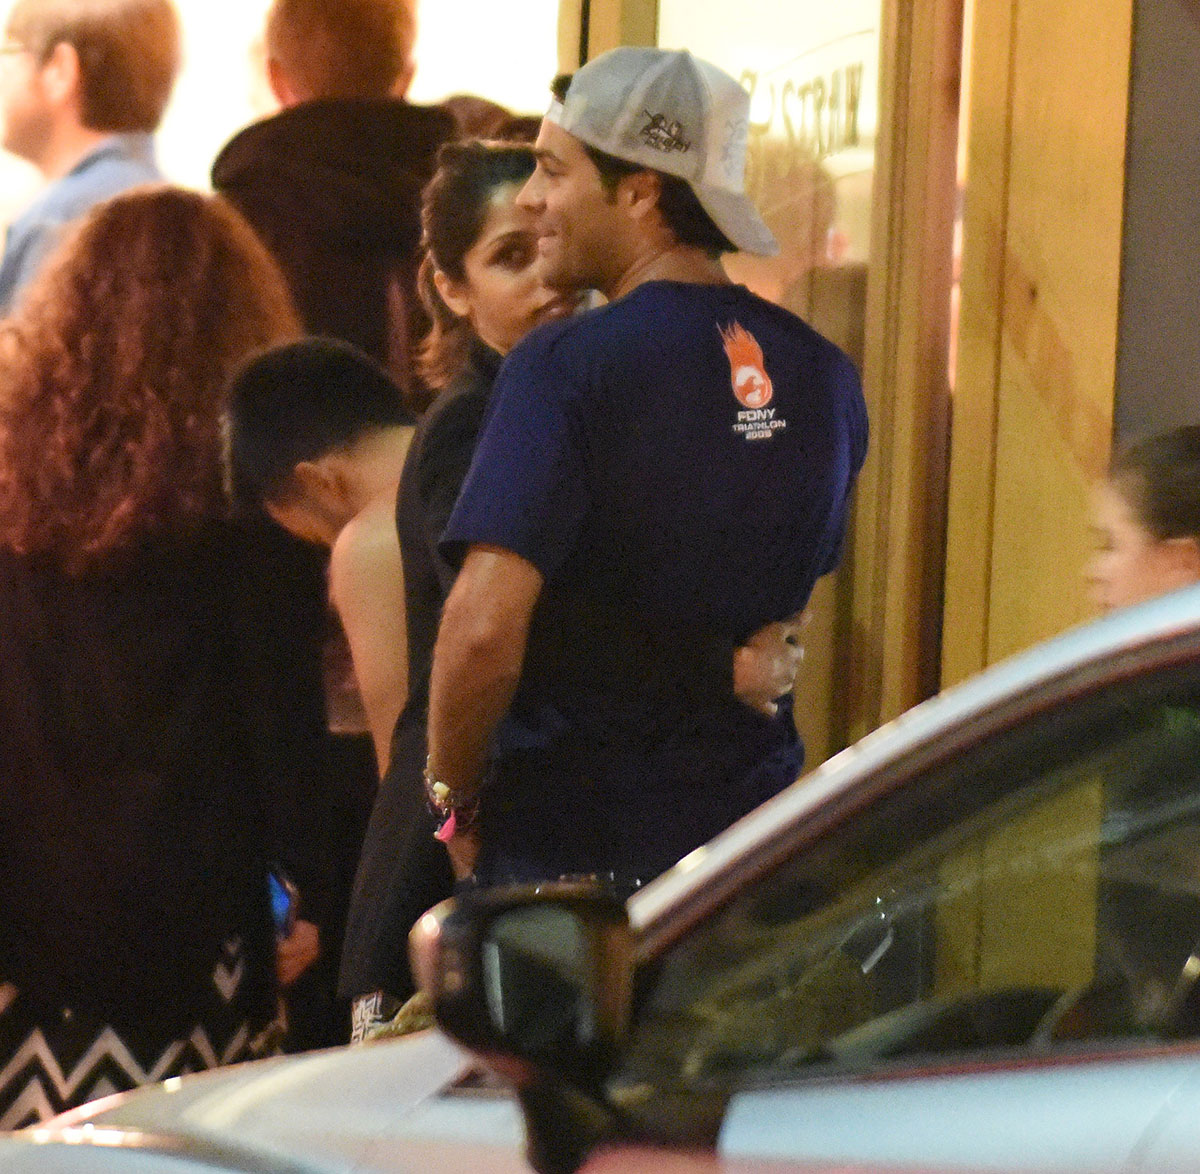 FREIDA PINTO Kisses Her New Boyfriend Ronnie Bacardi 10/20 ... Freida Pinto Engaged